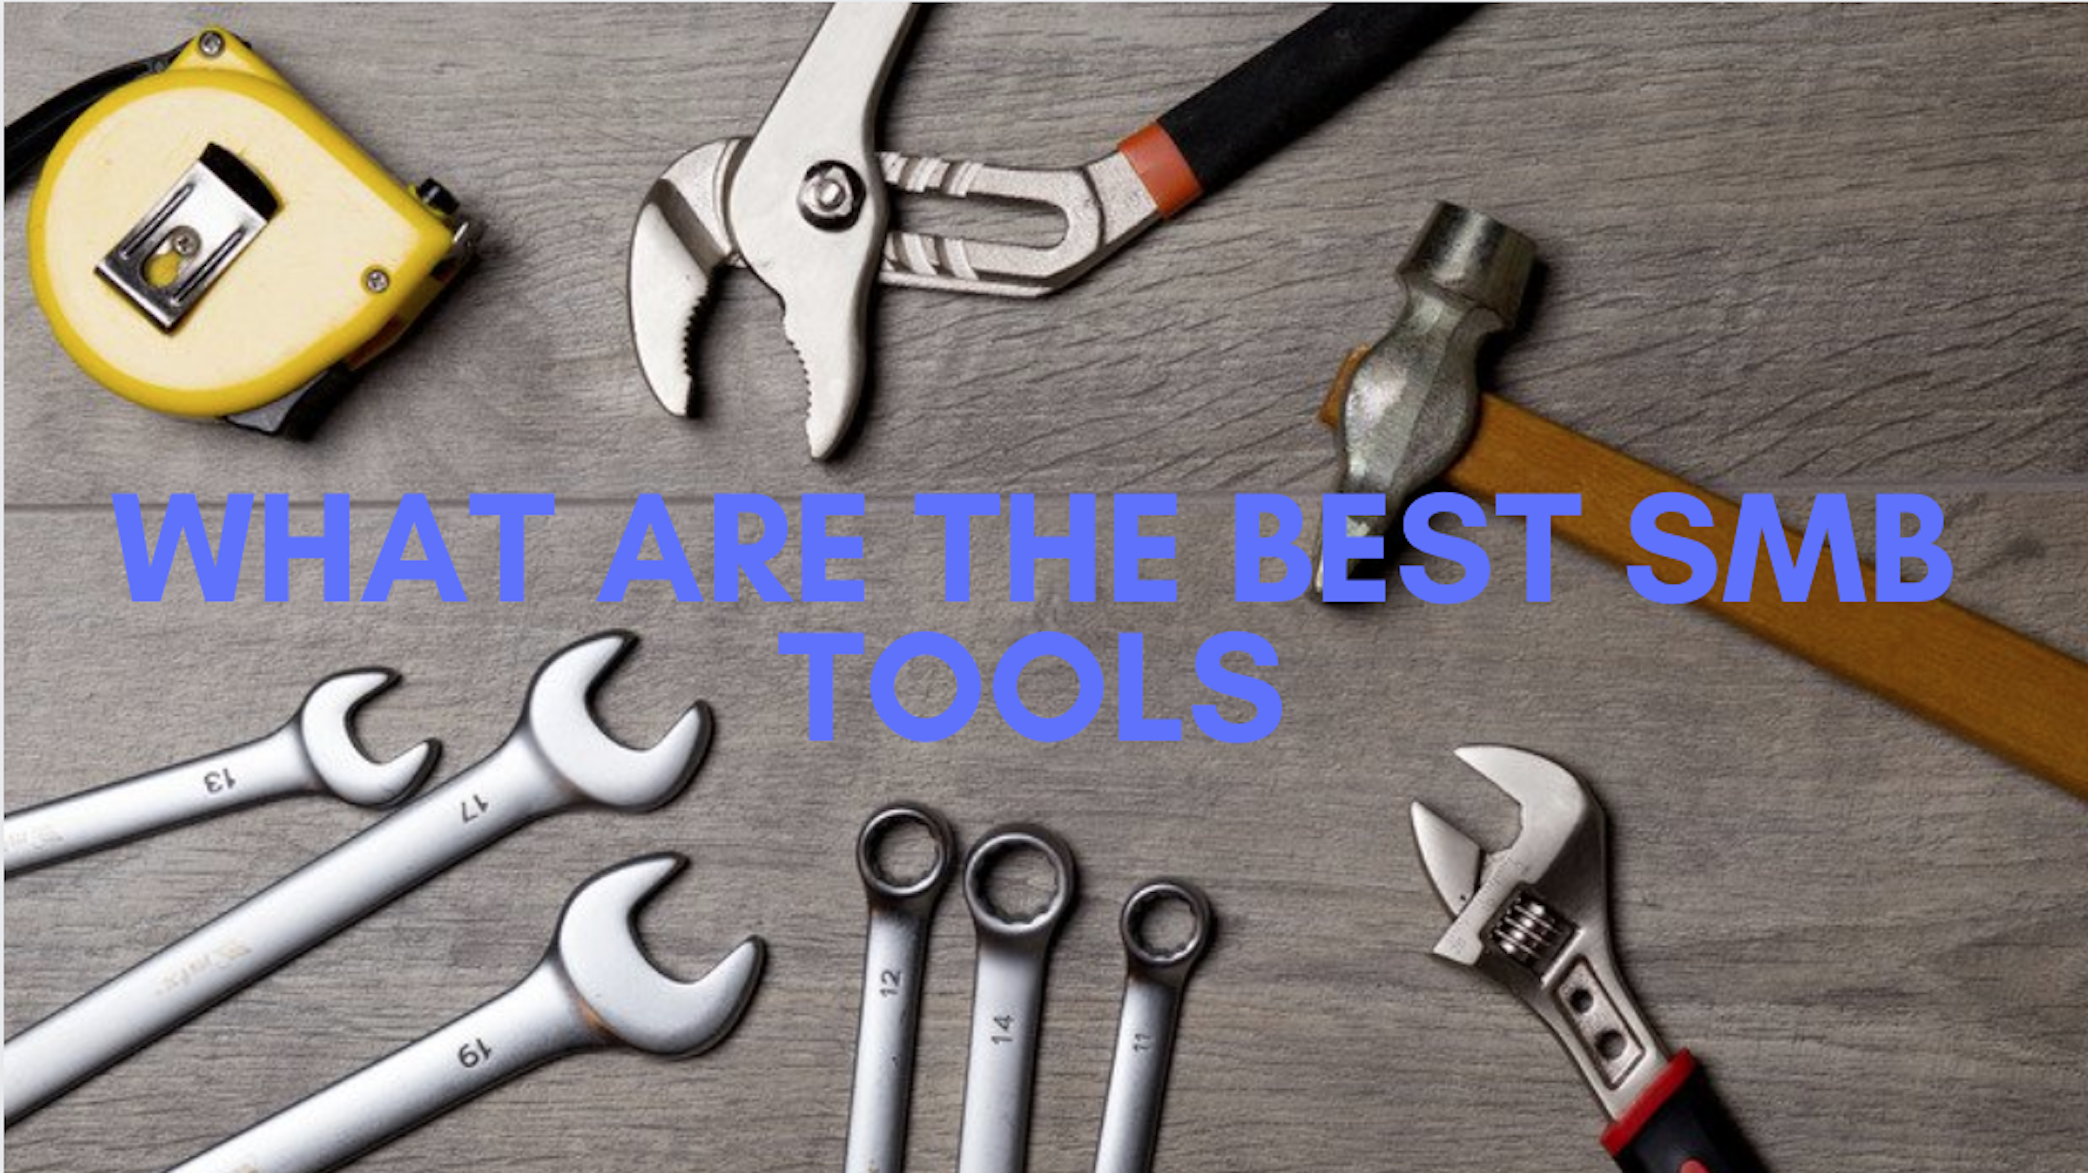 WHAT ARE THE BEST SMB TOOLS